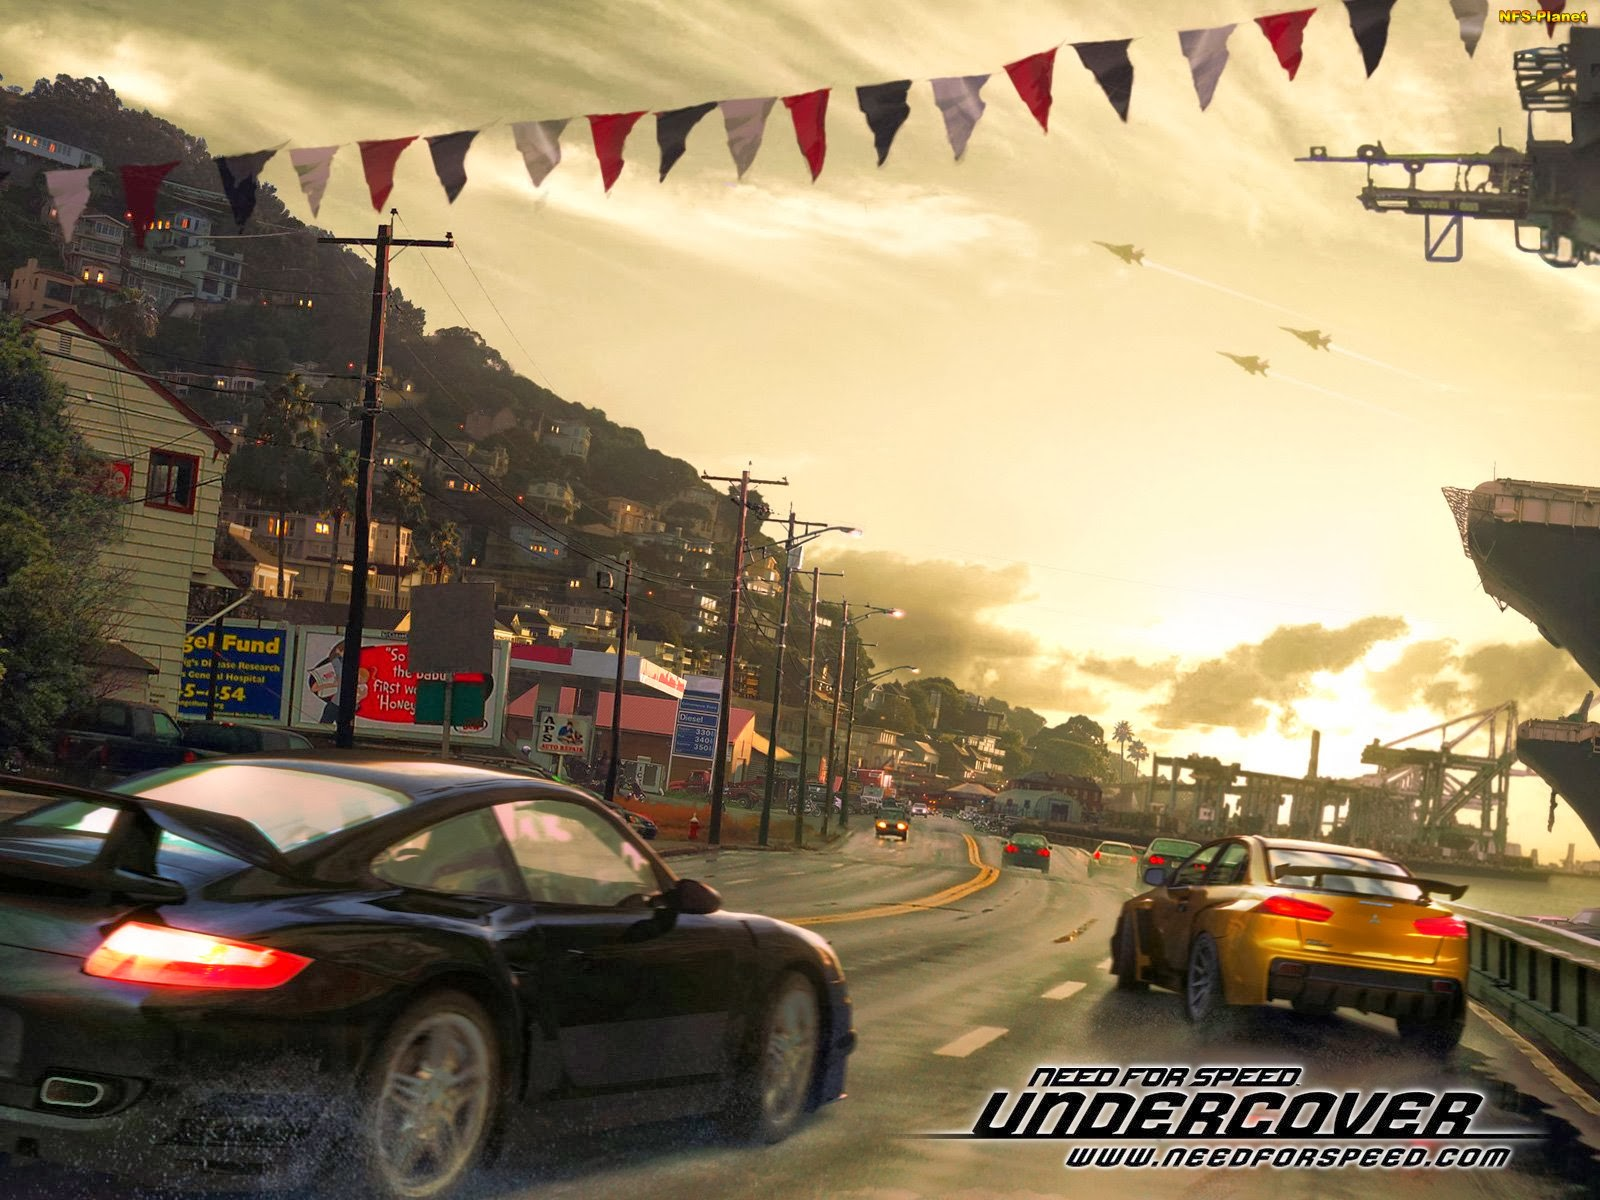 need for speed undercover free download pc game updated software games. Black Bedroom Furniture Sets. Home Design Ideas